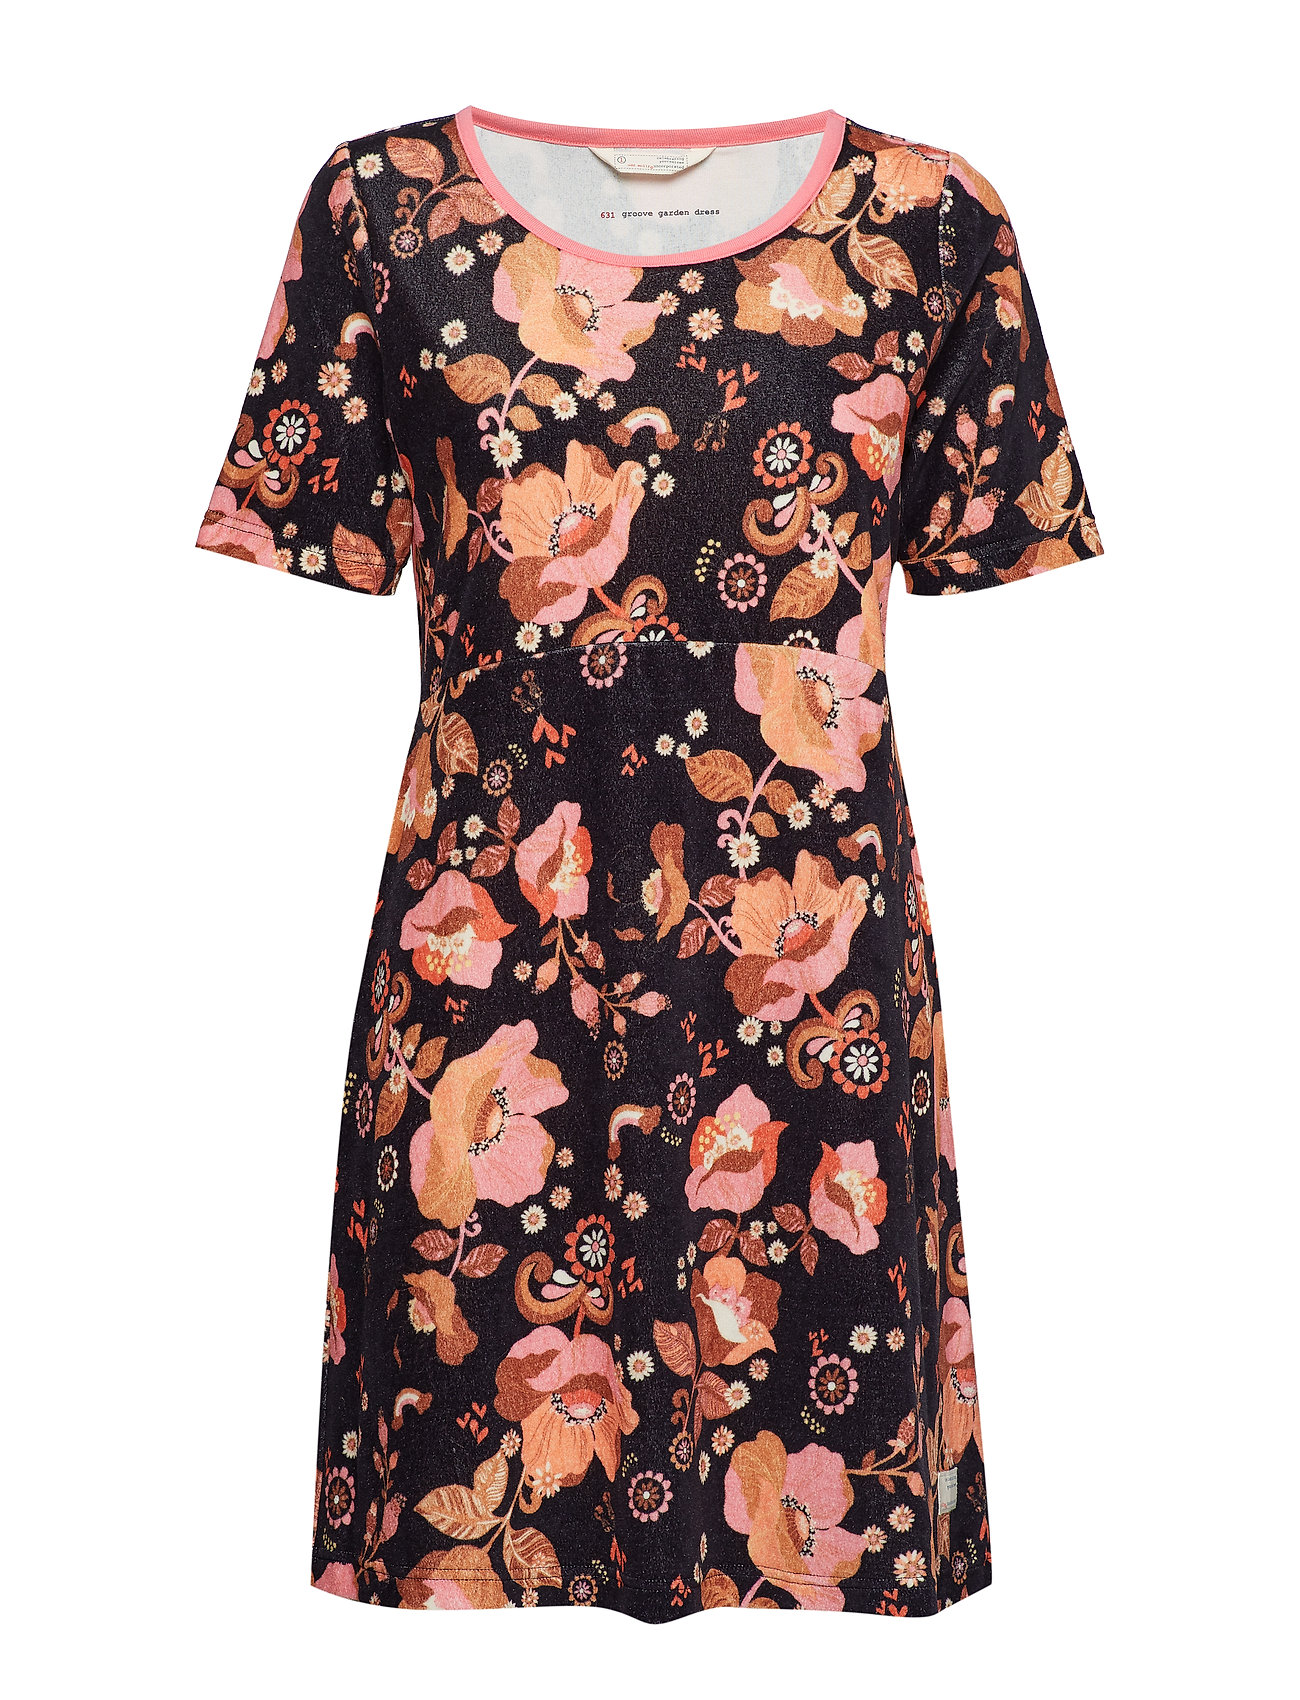 ODD MOLLY groove garden dress